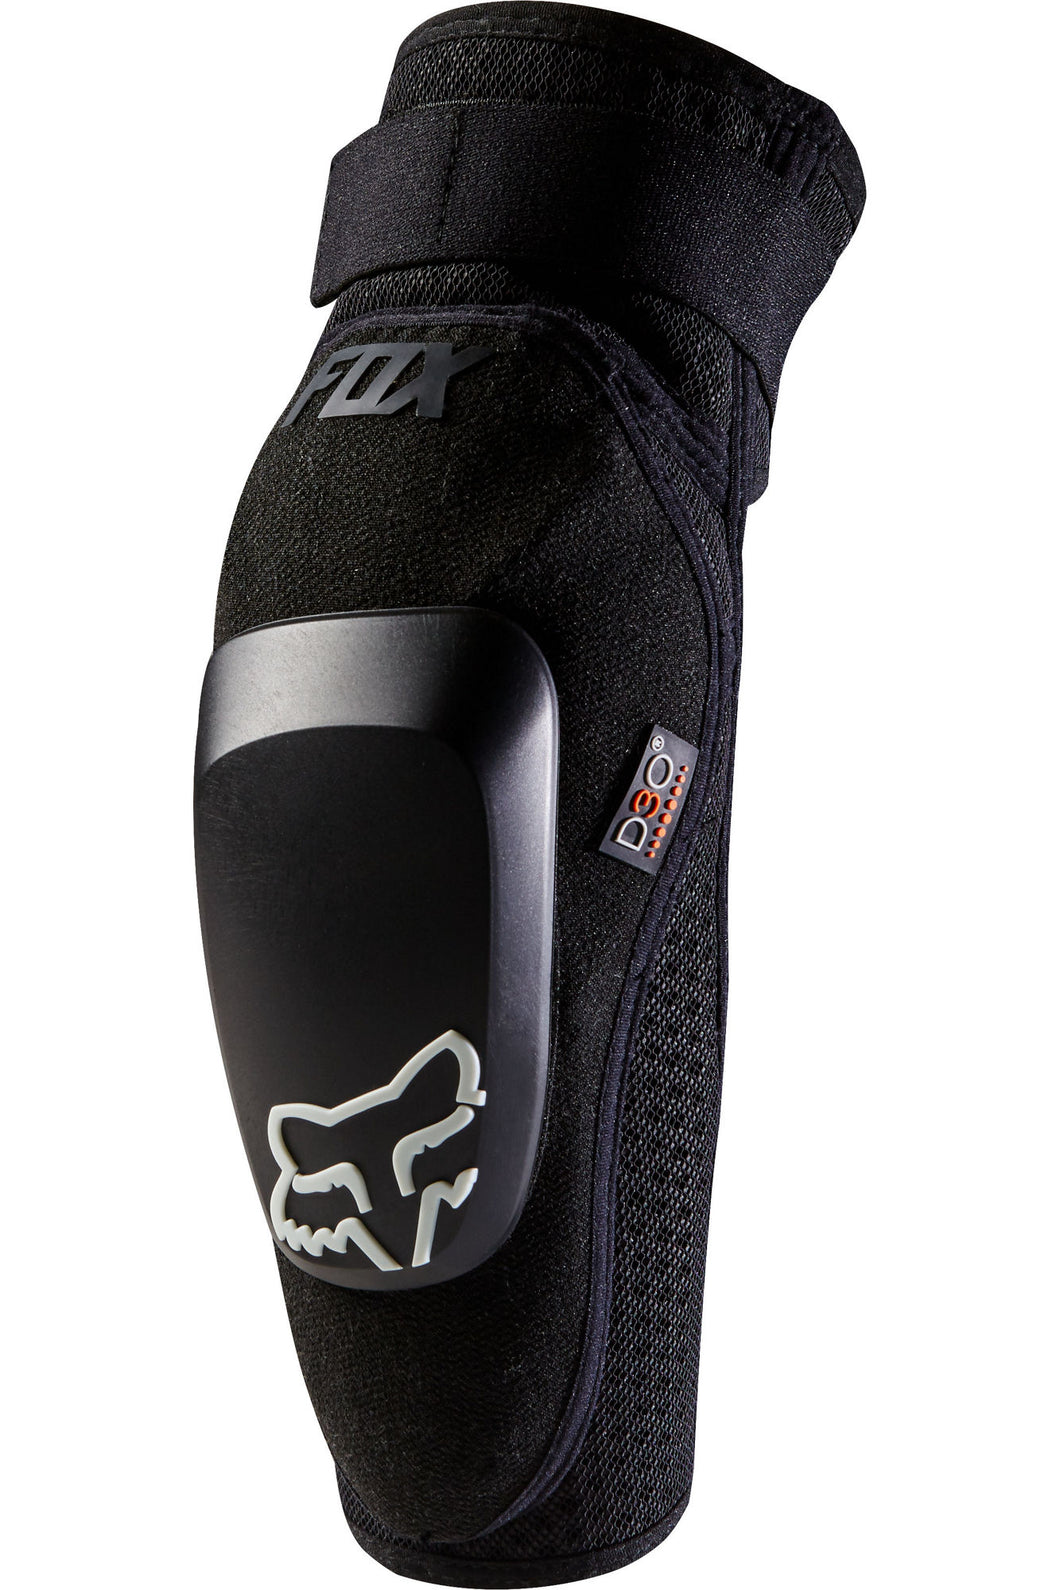 Launch Pro D3O® Elbow Guard